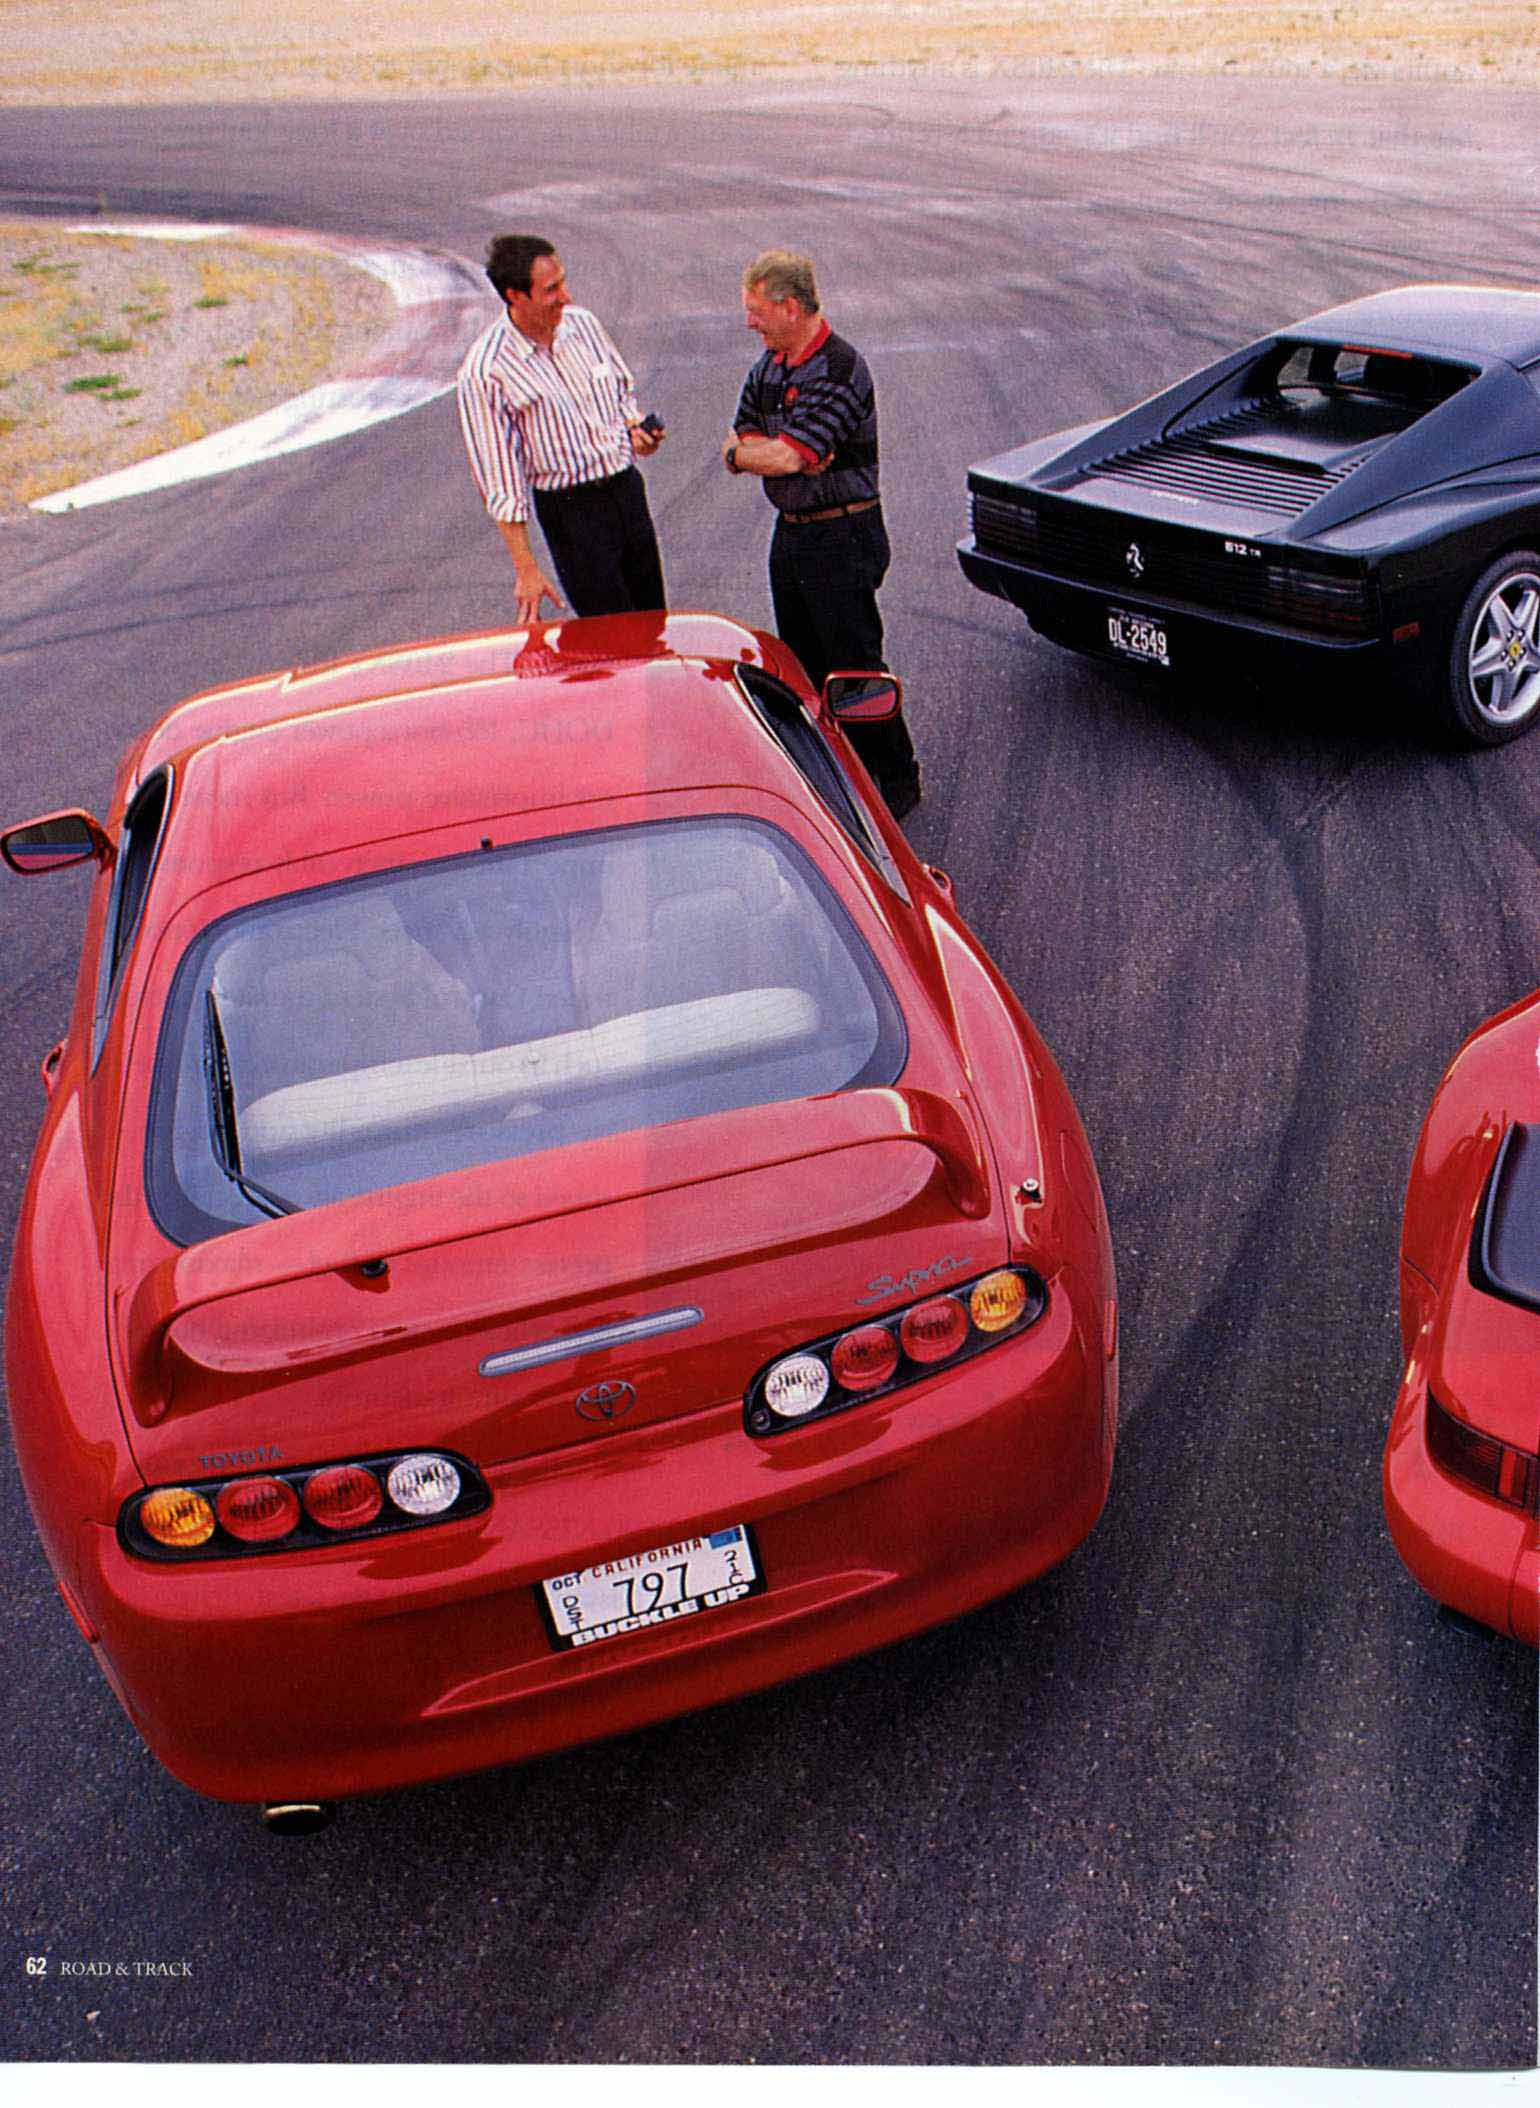 Ferrari Vs Toyota >> Porsche 964 Turbo 3 6 Vs Ferrari 512 Tr Vs Toyota Supra Turbo Road